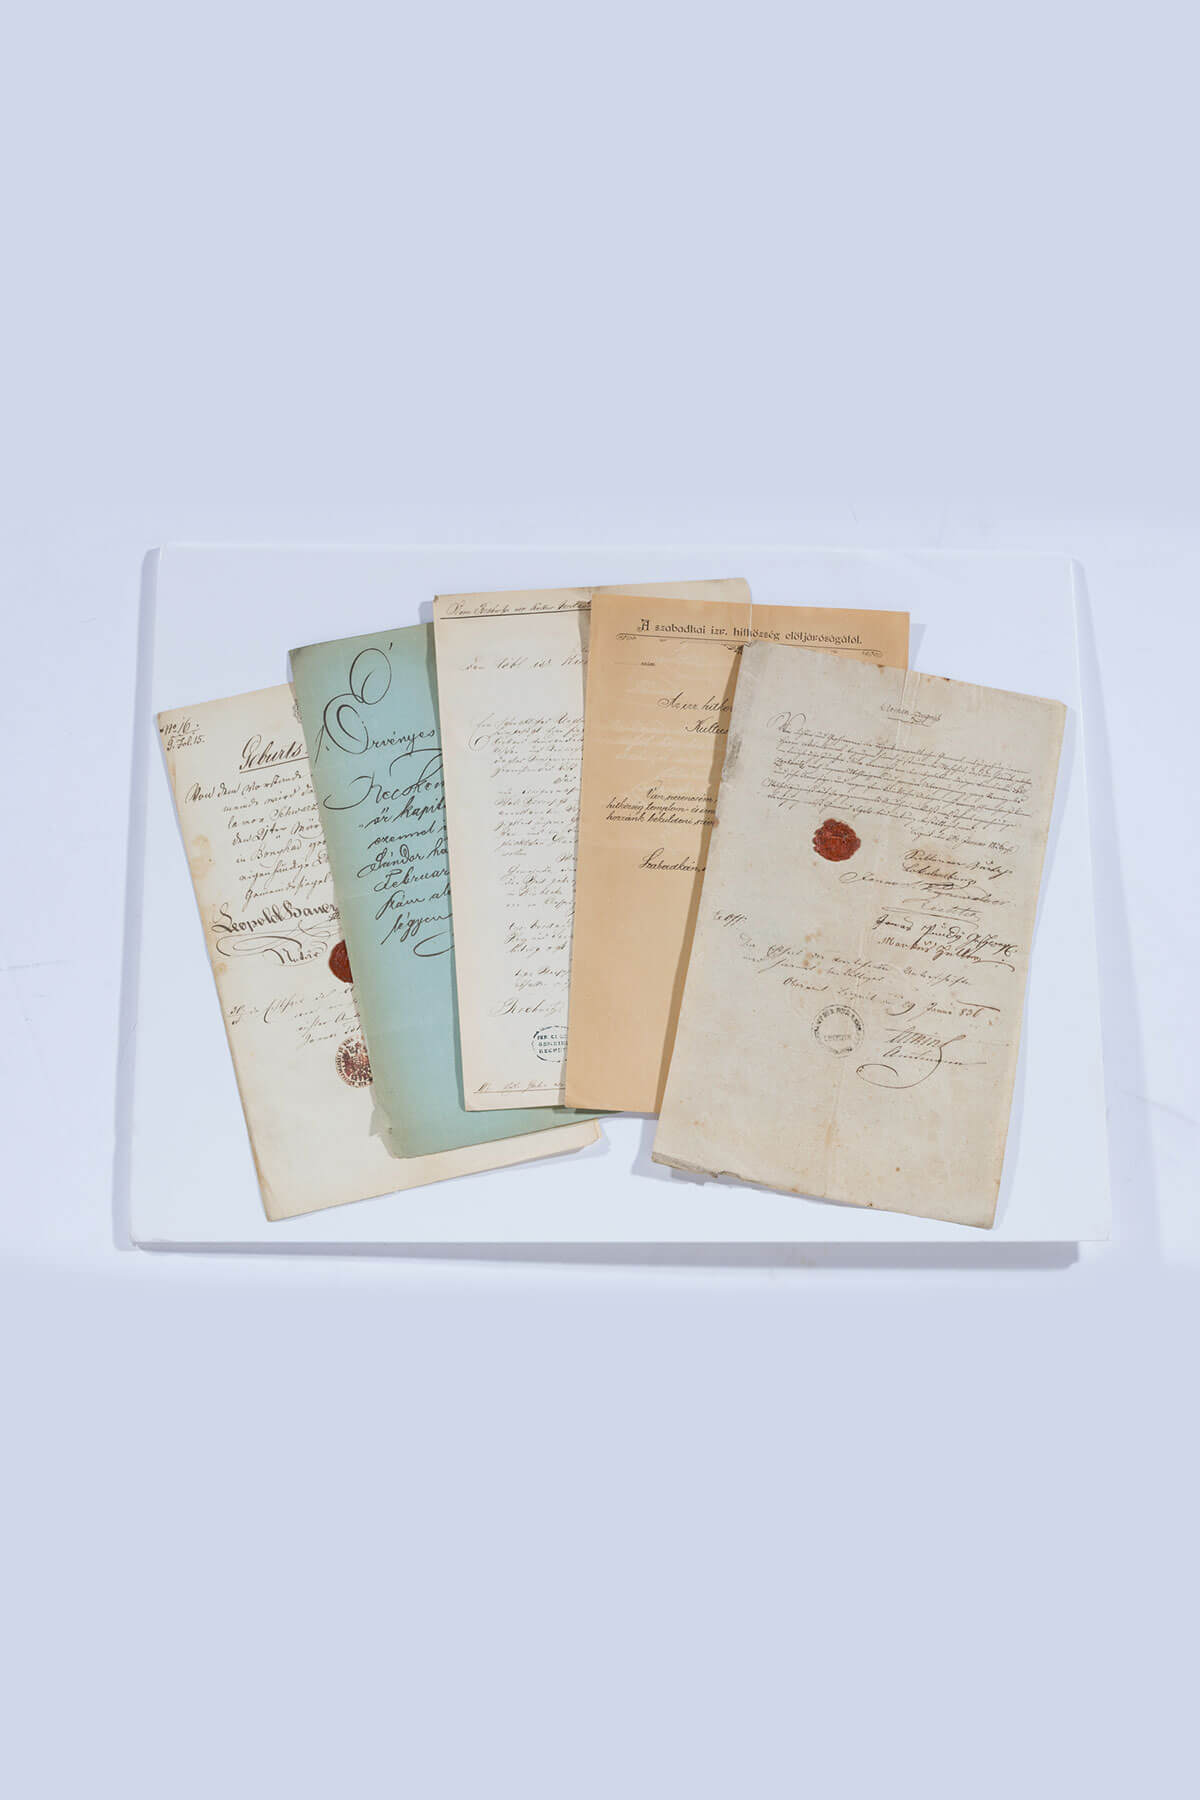 168. A Collection of Documents And Letters Received at the Kultusgemeinde